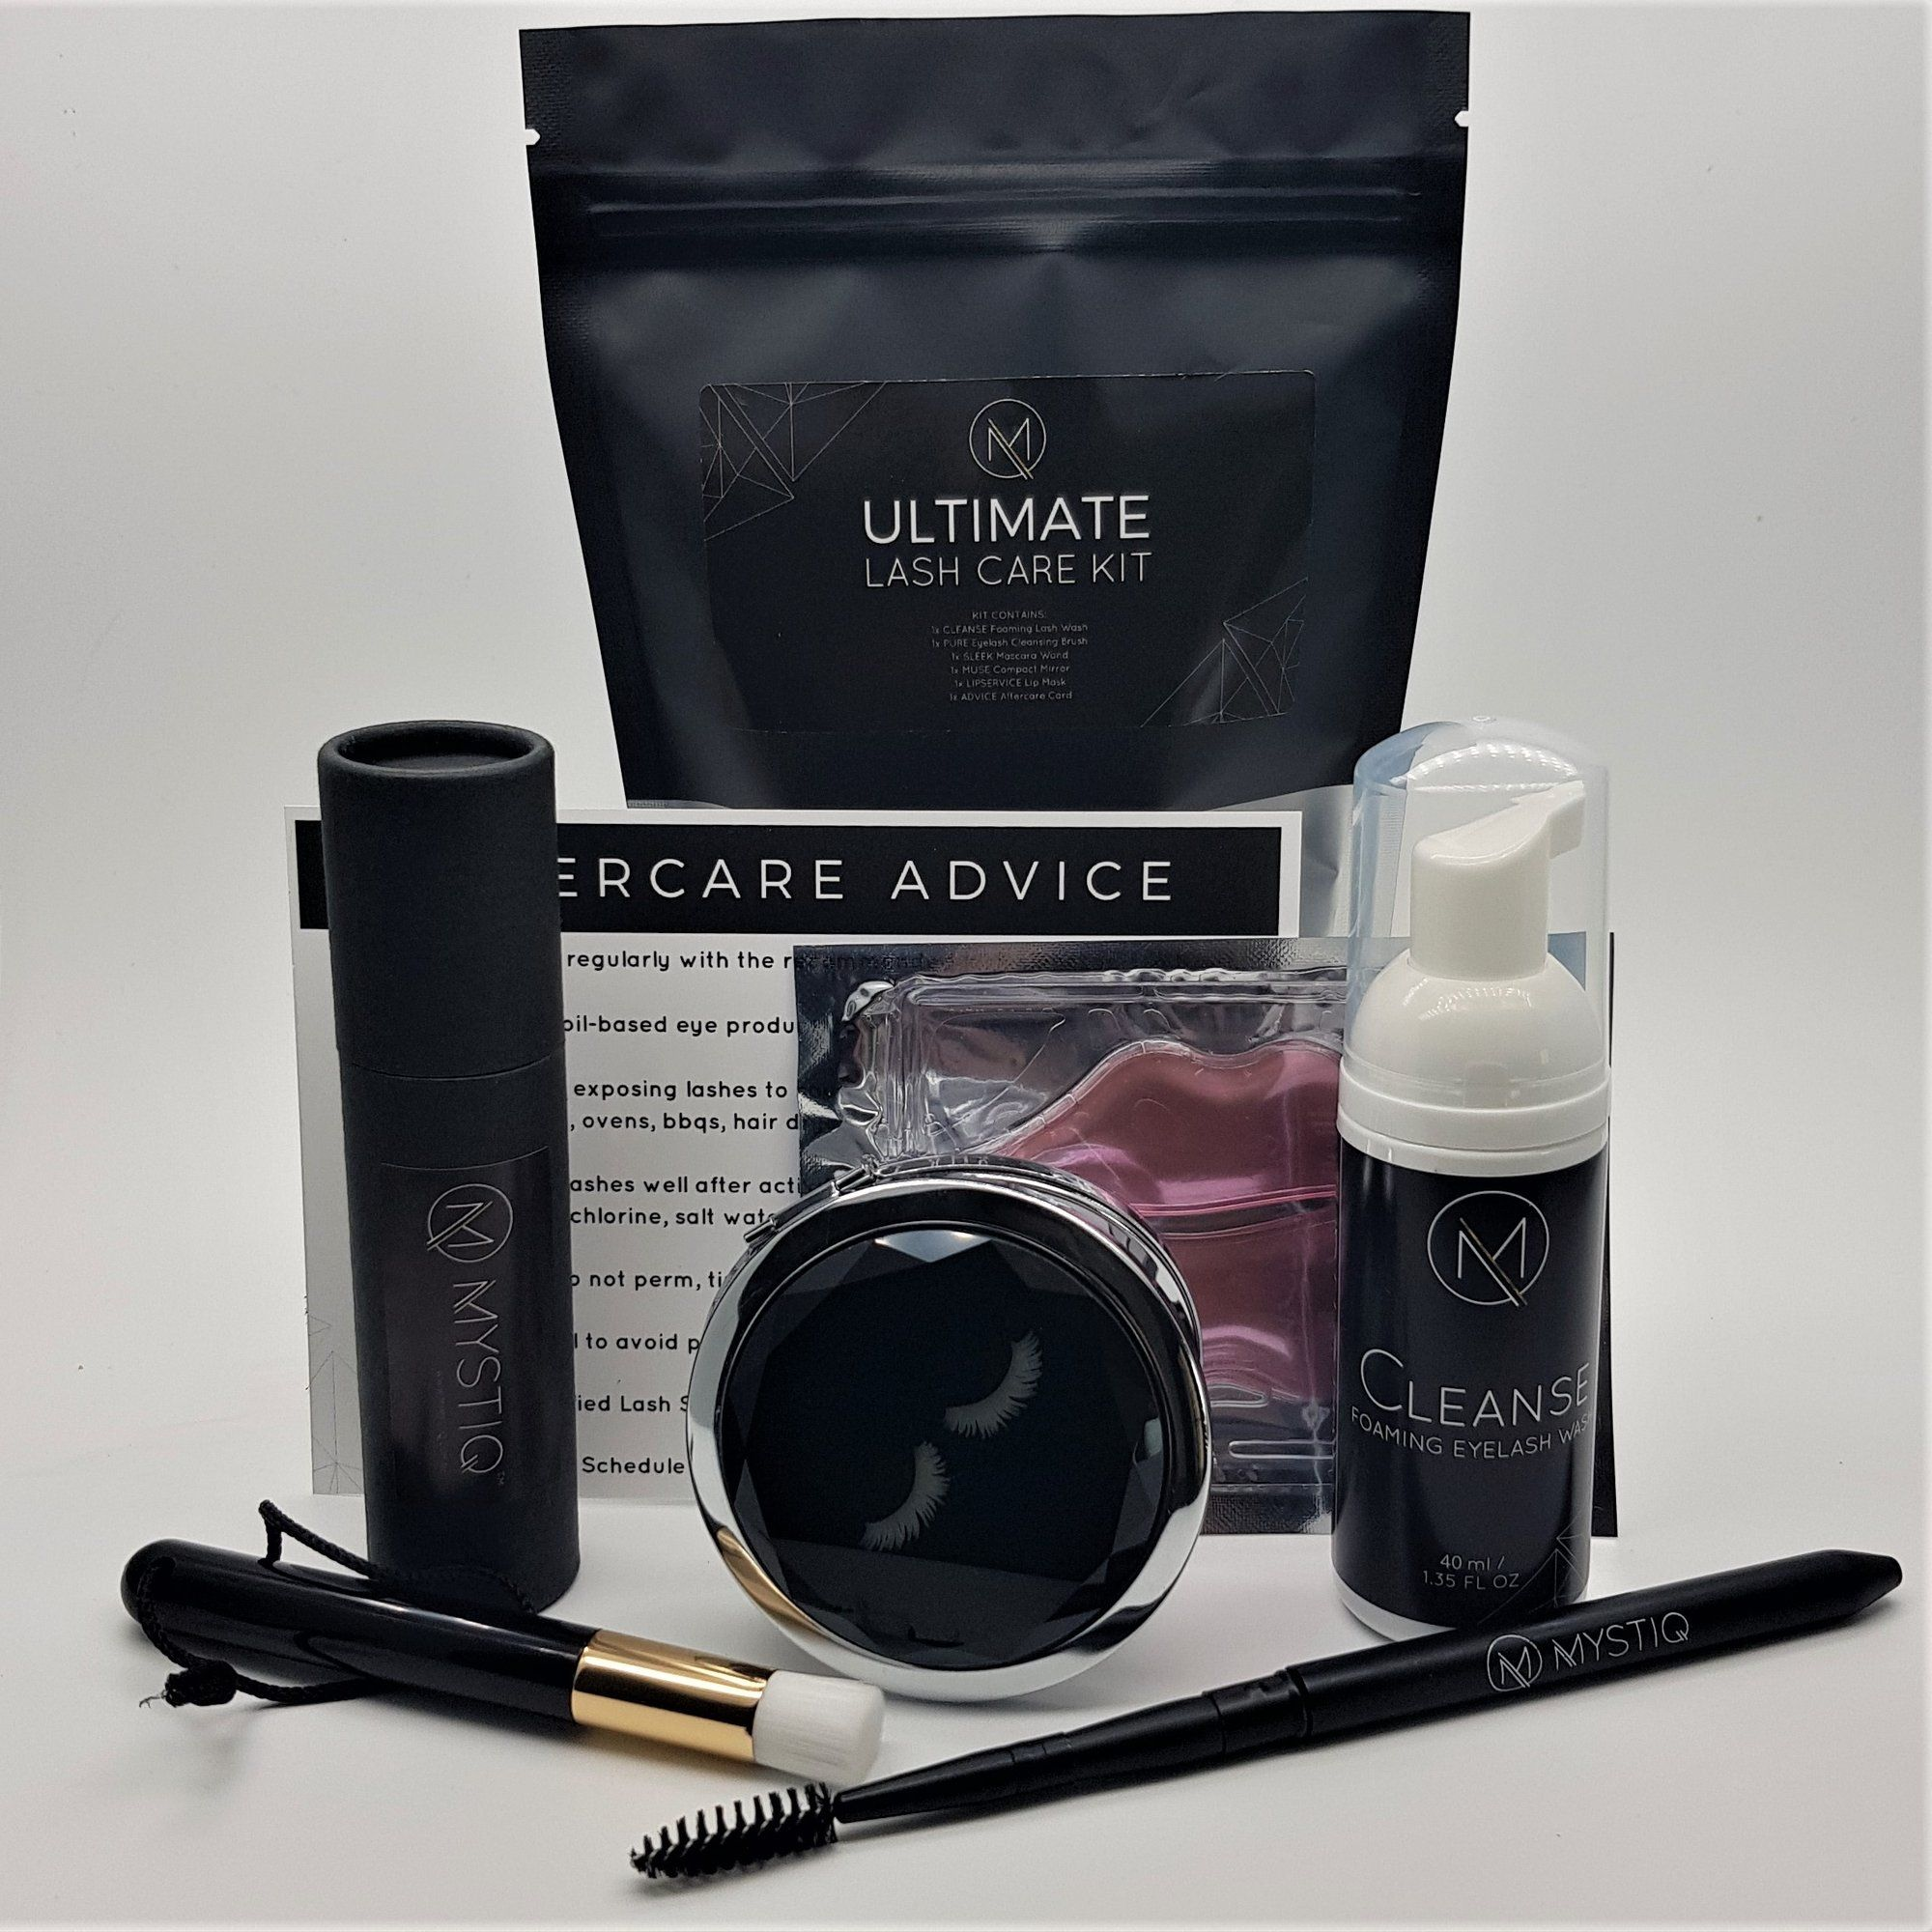 ULTIMATE Lash Care Kit musthave aftercare for eyelash